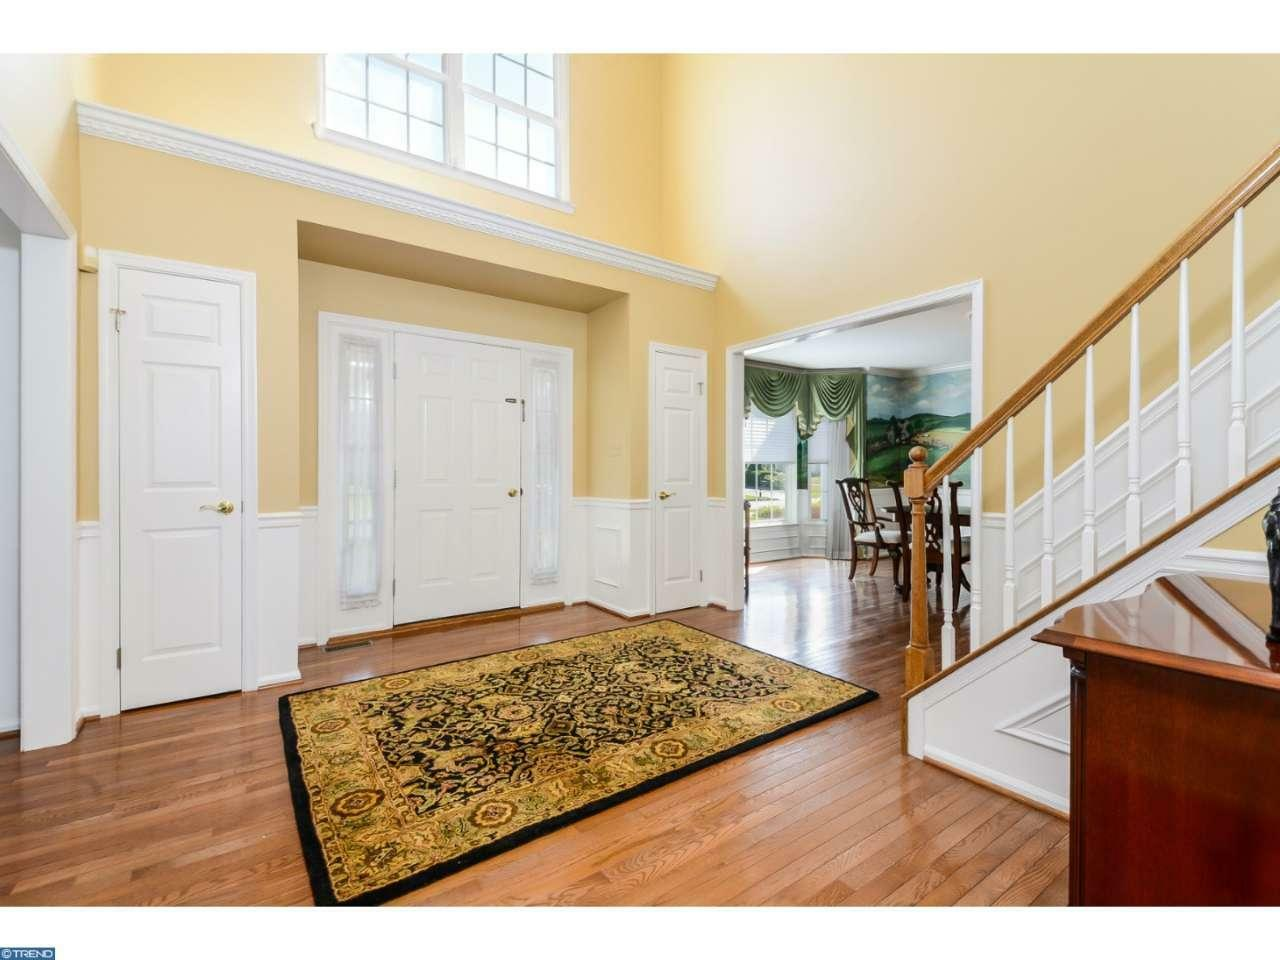 4282 Shedden Cir, Doylestown, PA - USA (photo 5)